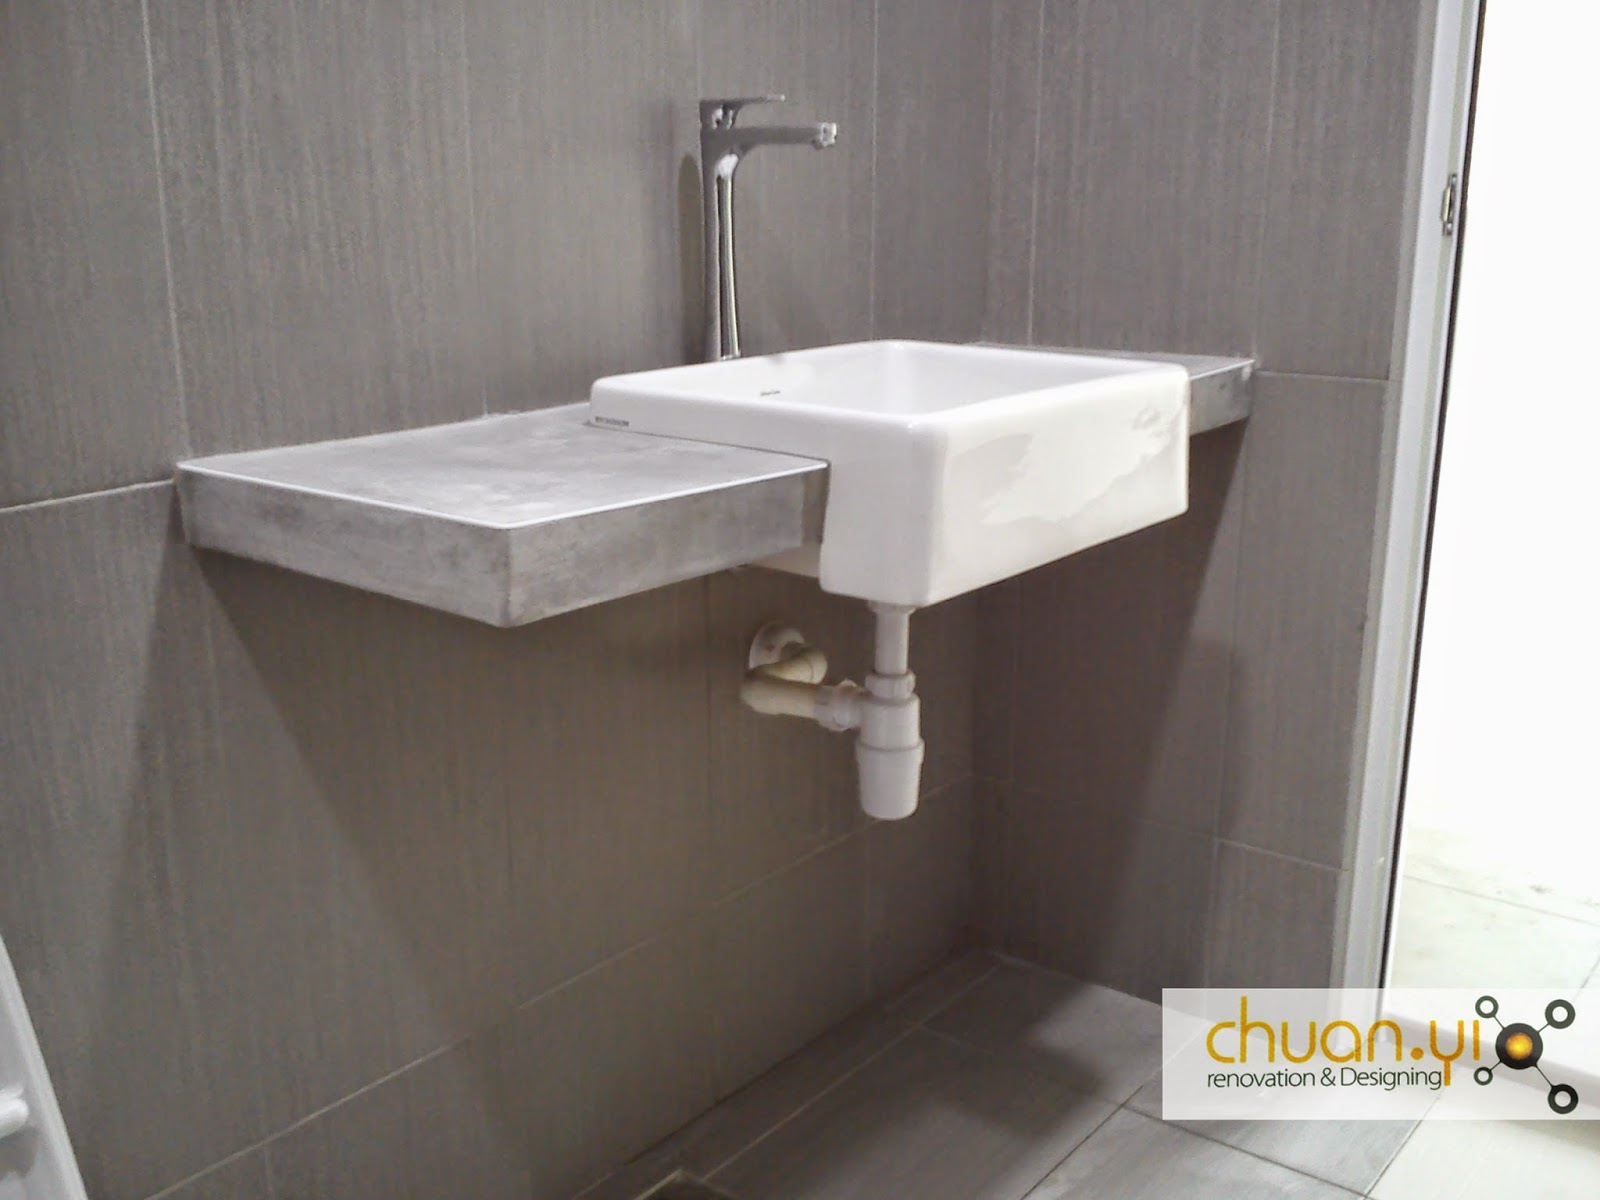 Chuan yi construction renovation sdn bhd master bath for E bathroom solution sdn bhd